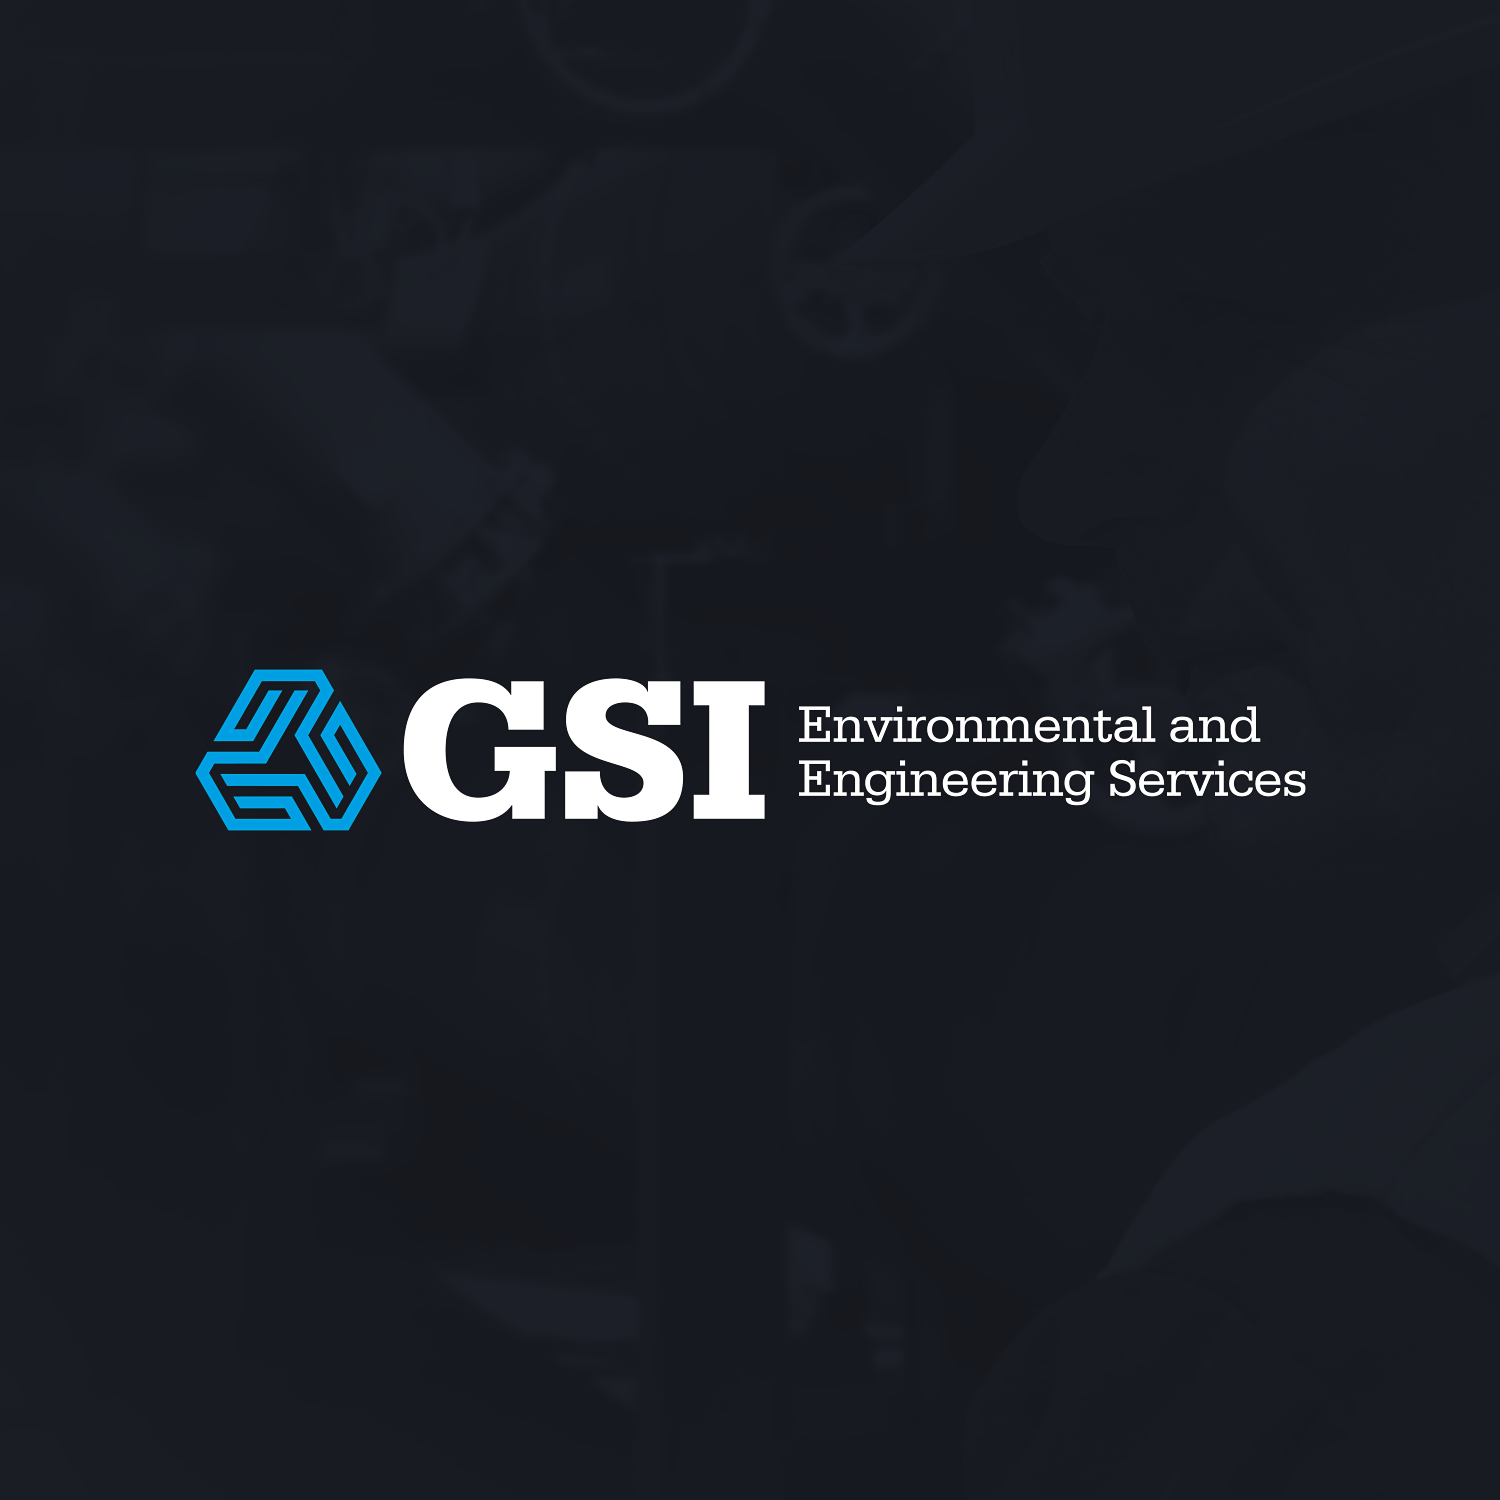 PREMIUM LOGO - GSI Environmental and Engineering Services